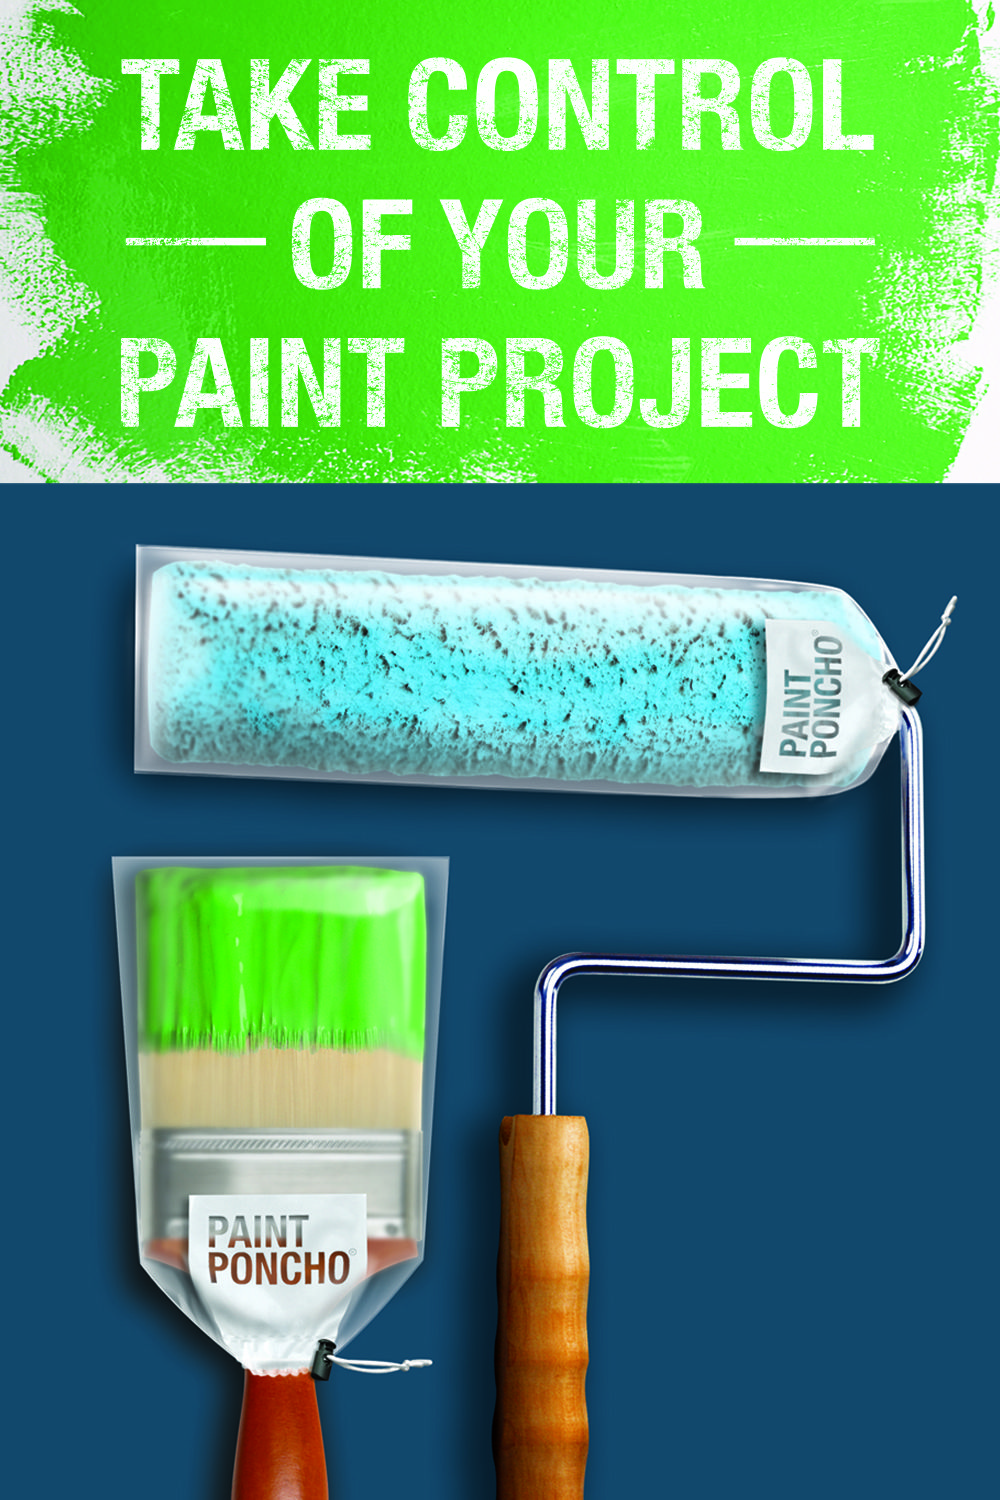 Take Control Of Your Paint Project Paint Poncho S Wet Brush And Roller Protectors Give You The F Paint Brushes And Rollers Painting Projects Innovation Design